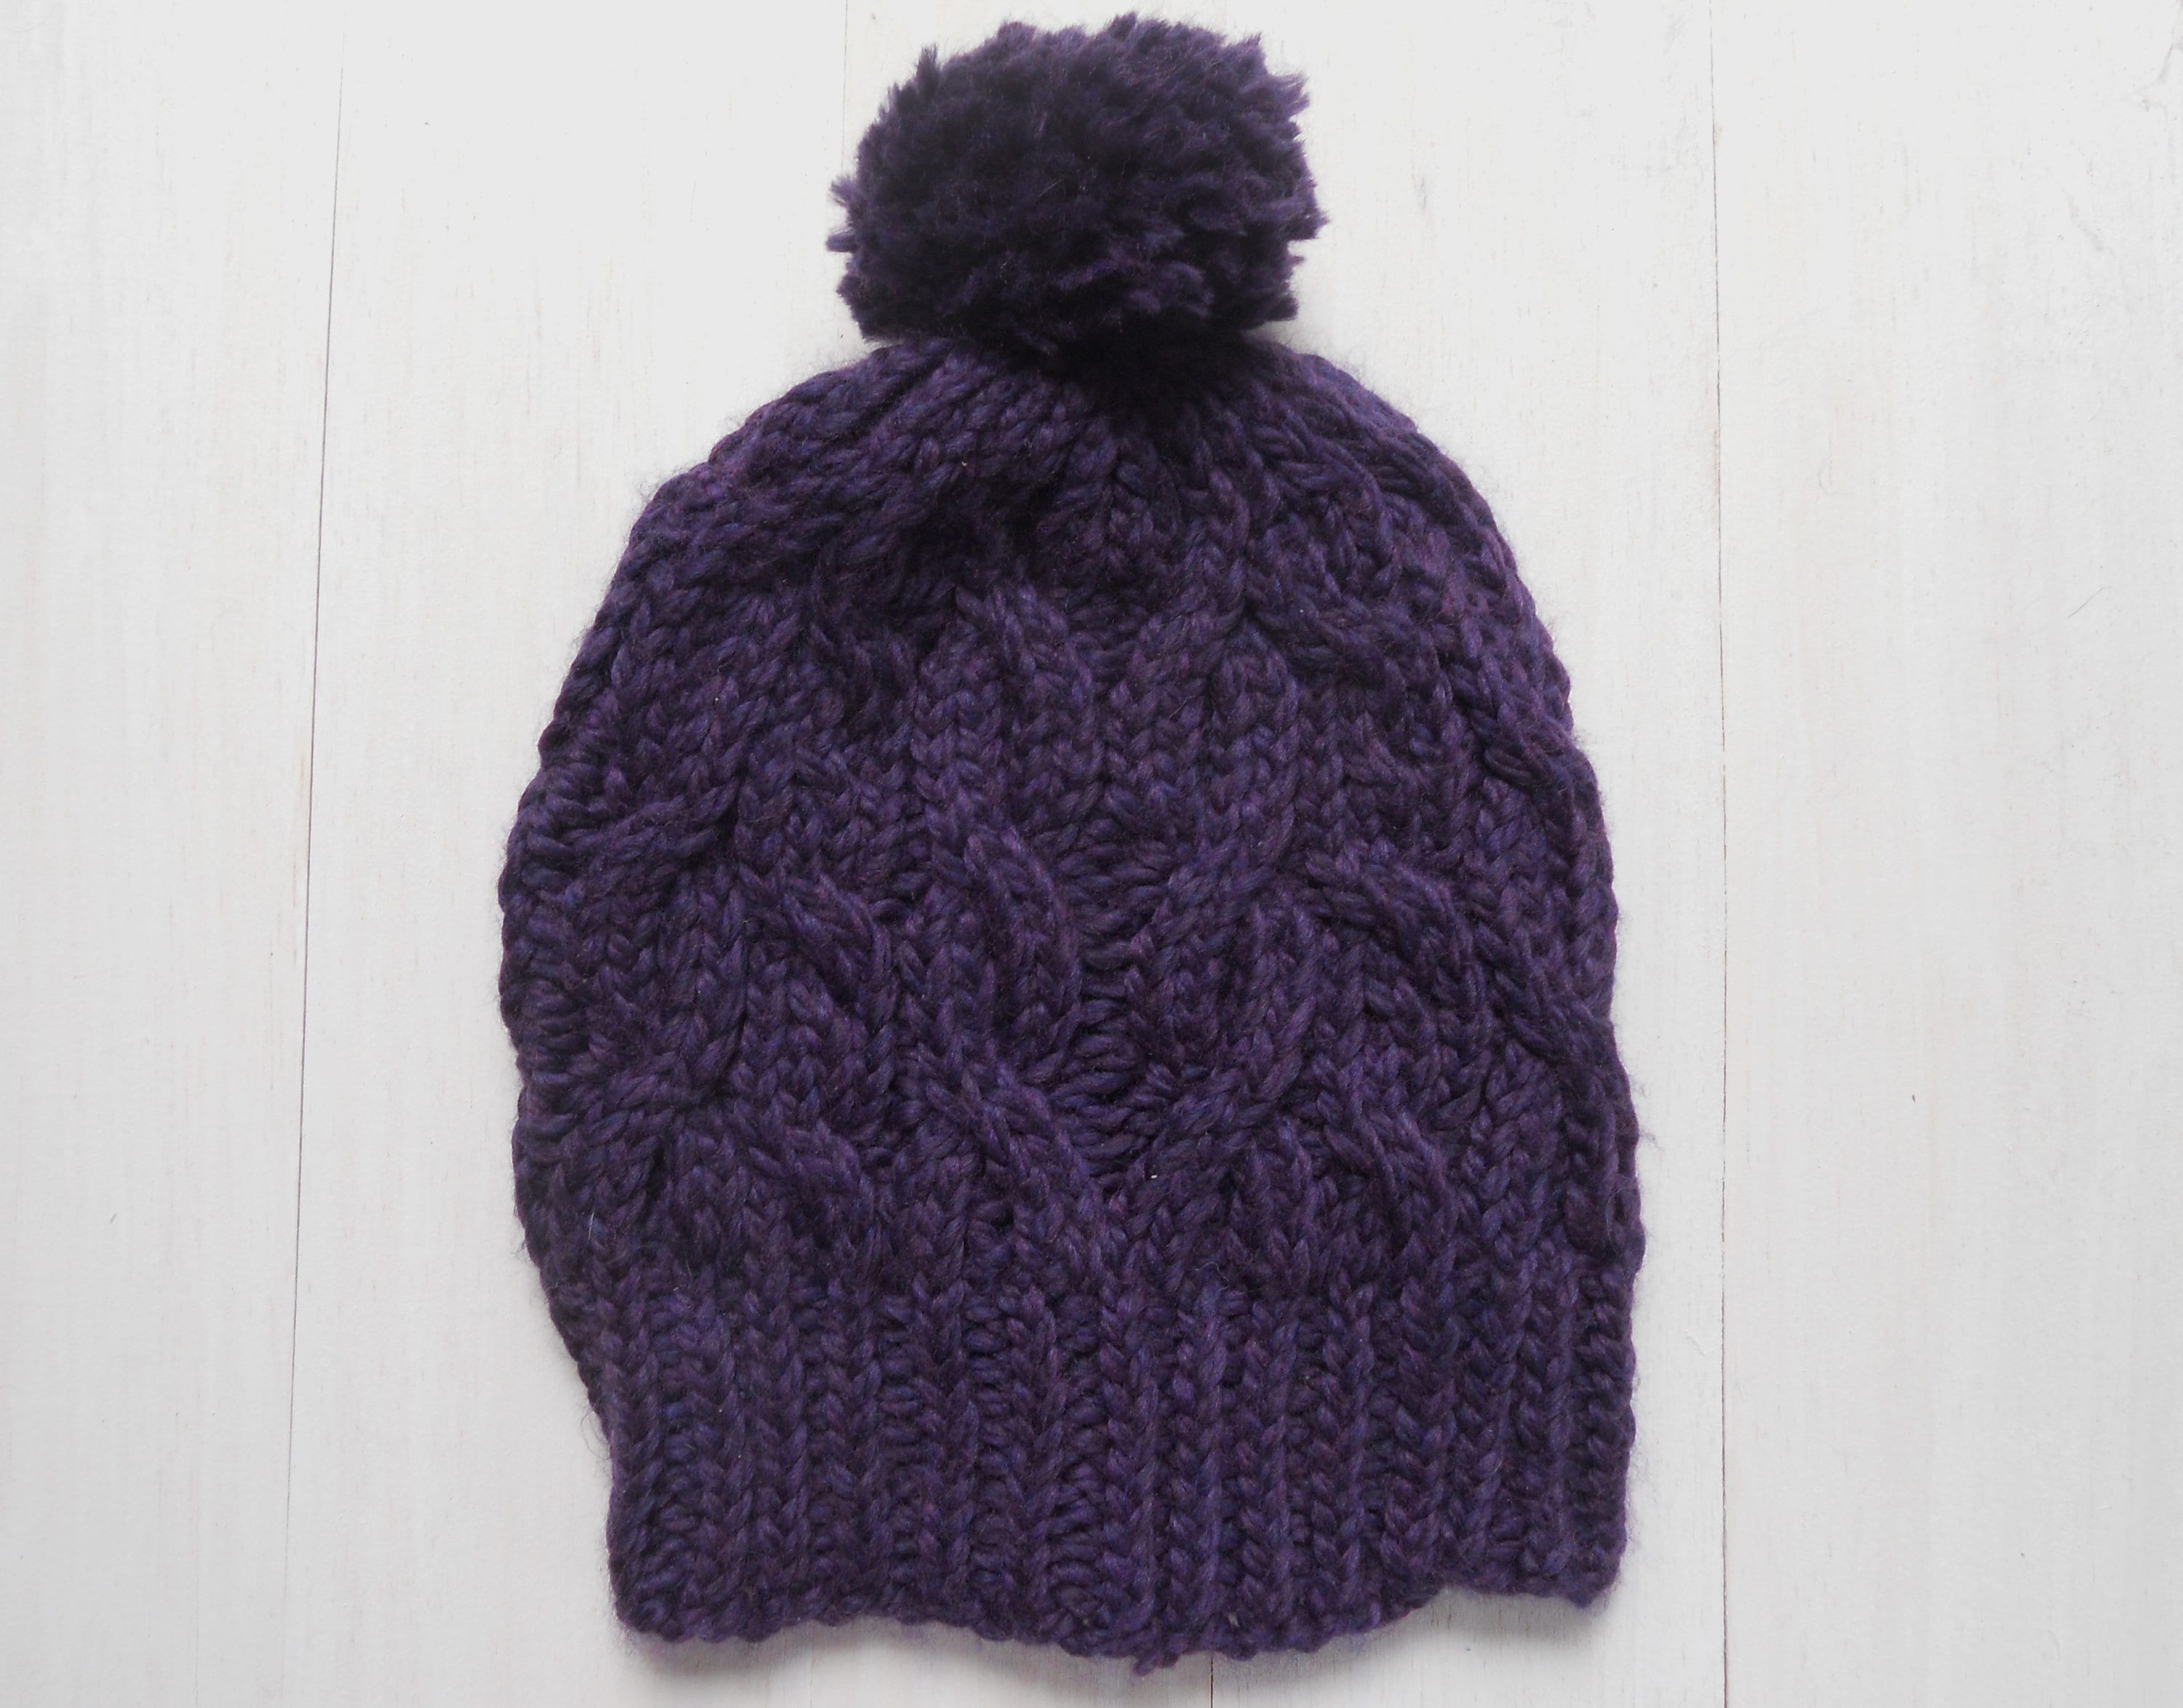 617fa428d7e05 Knit beanie hat Purple cable knit hat Winter women s